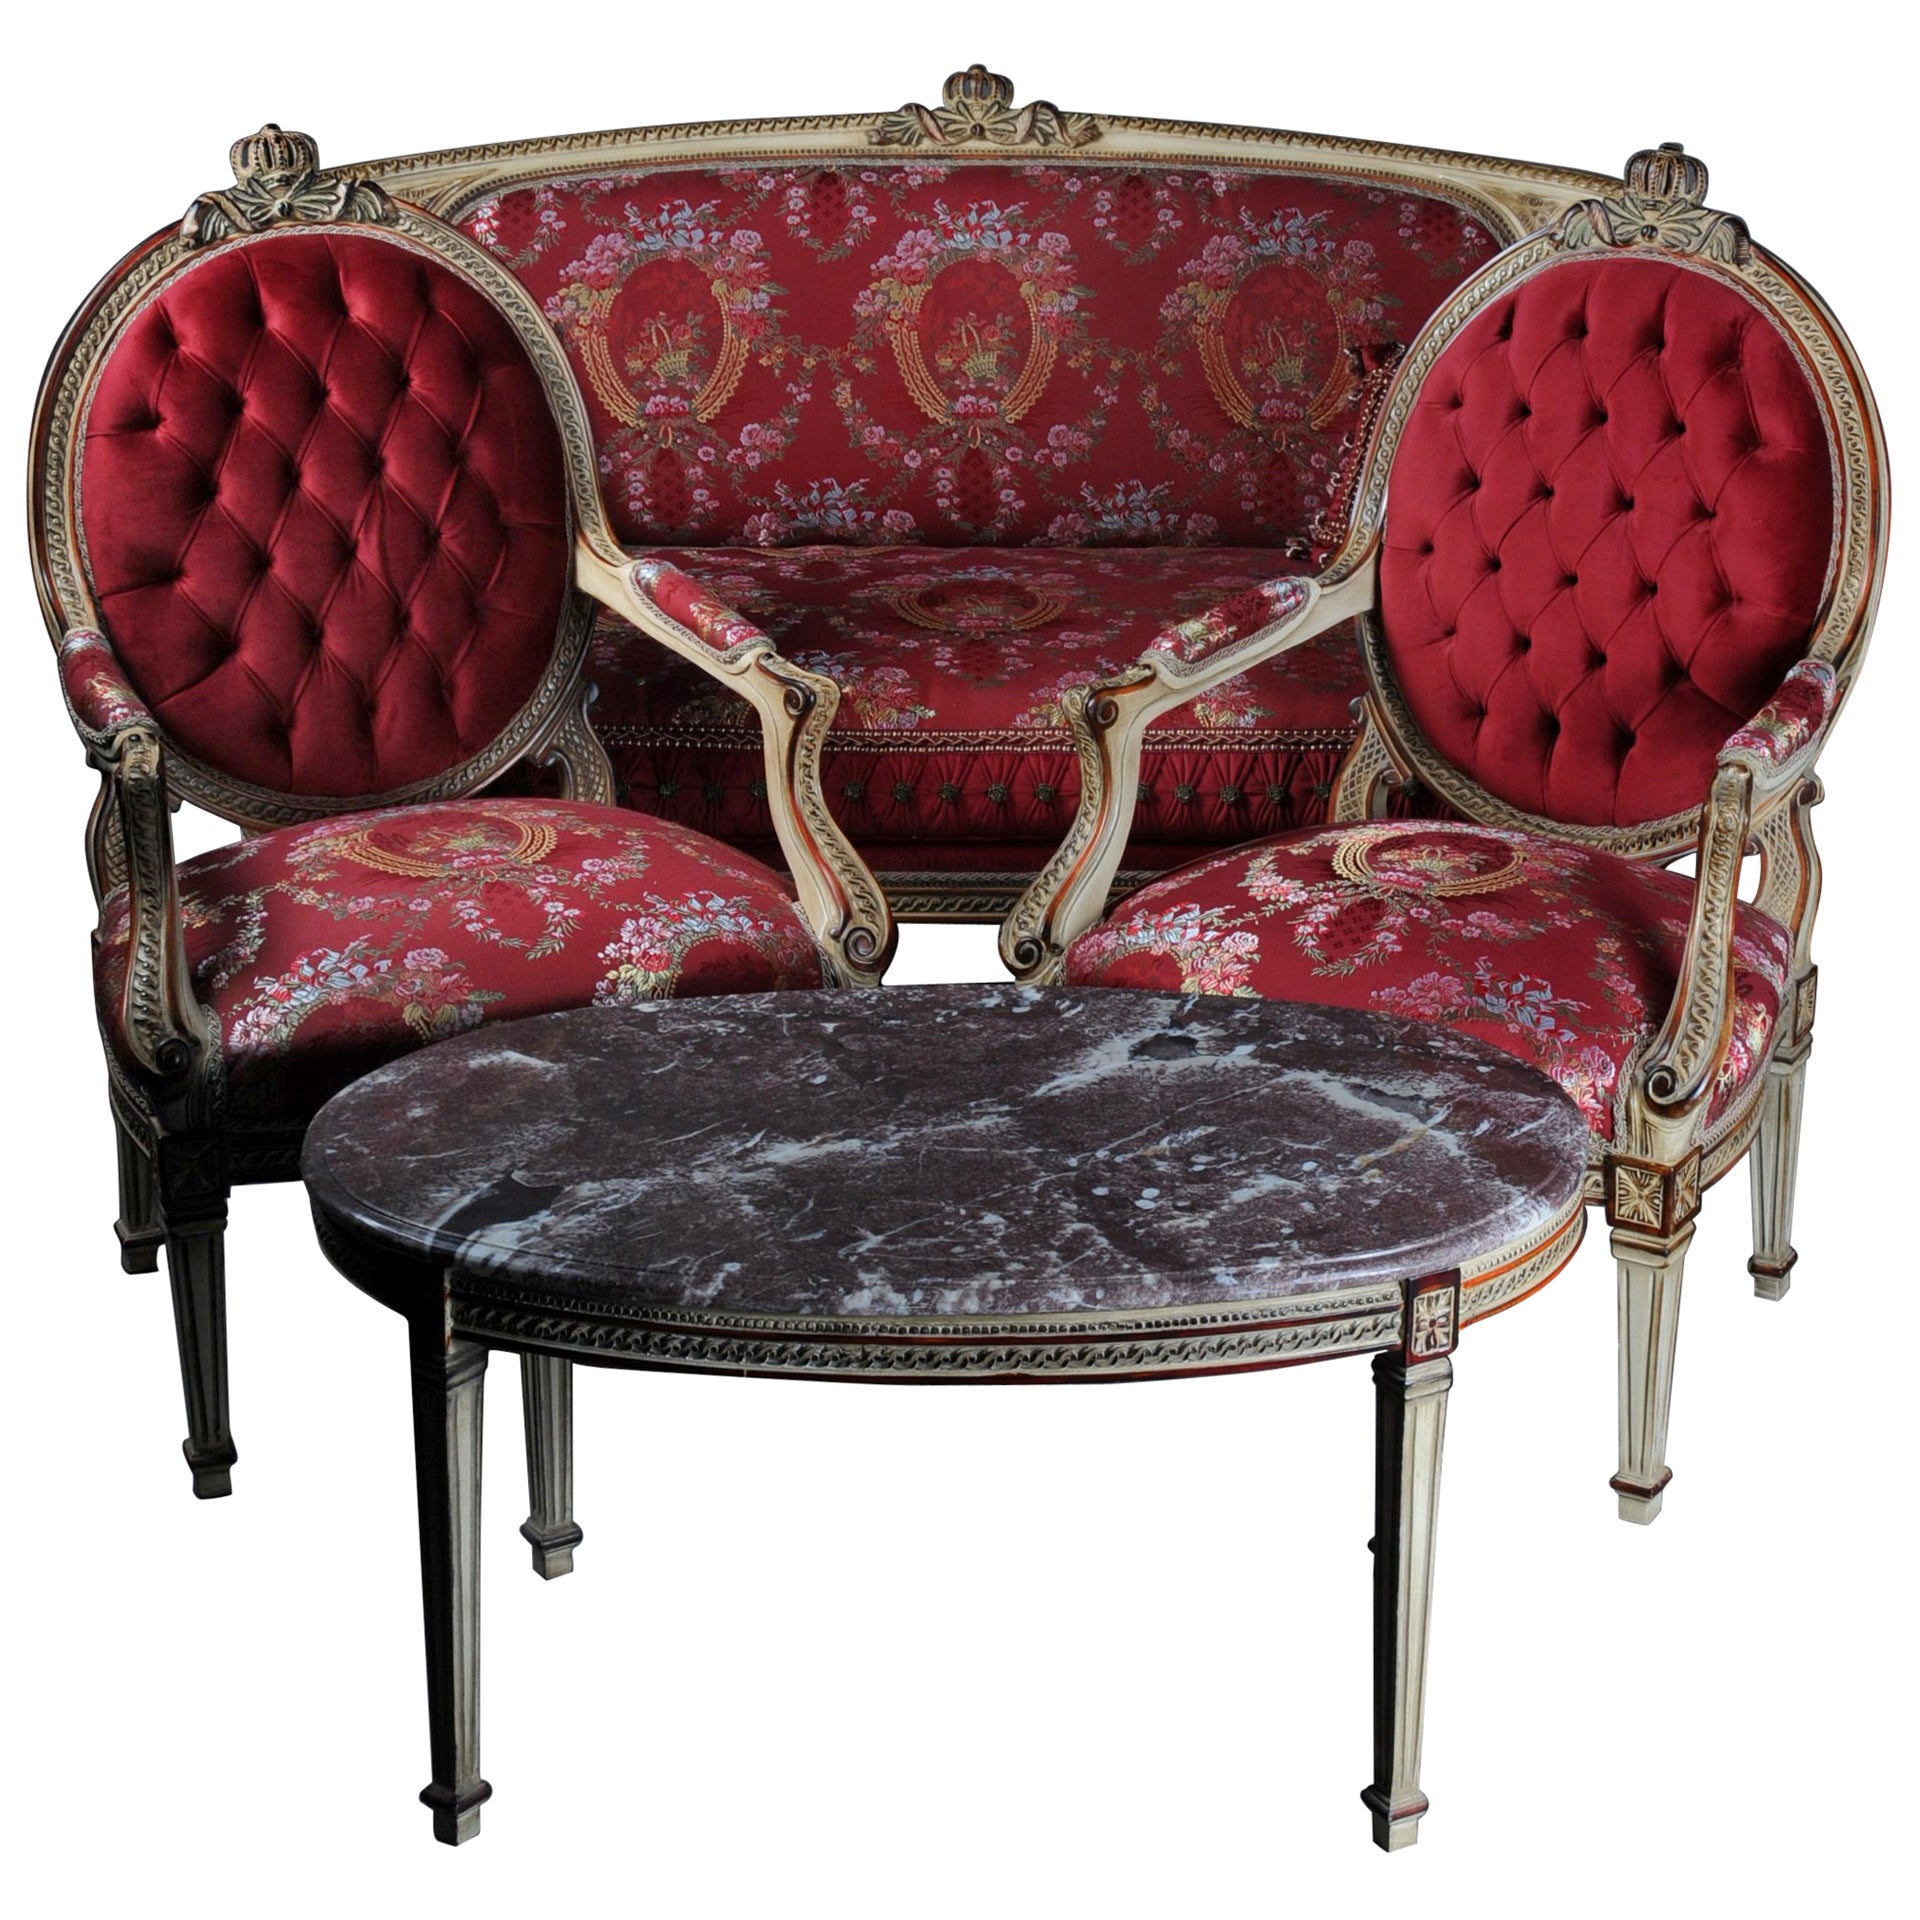 Unique Seating Group, Set with Oval Table in Louis XVI Seize